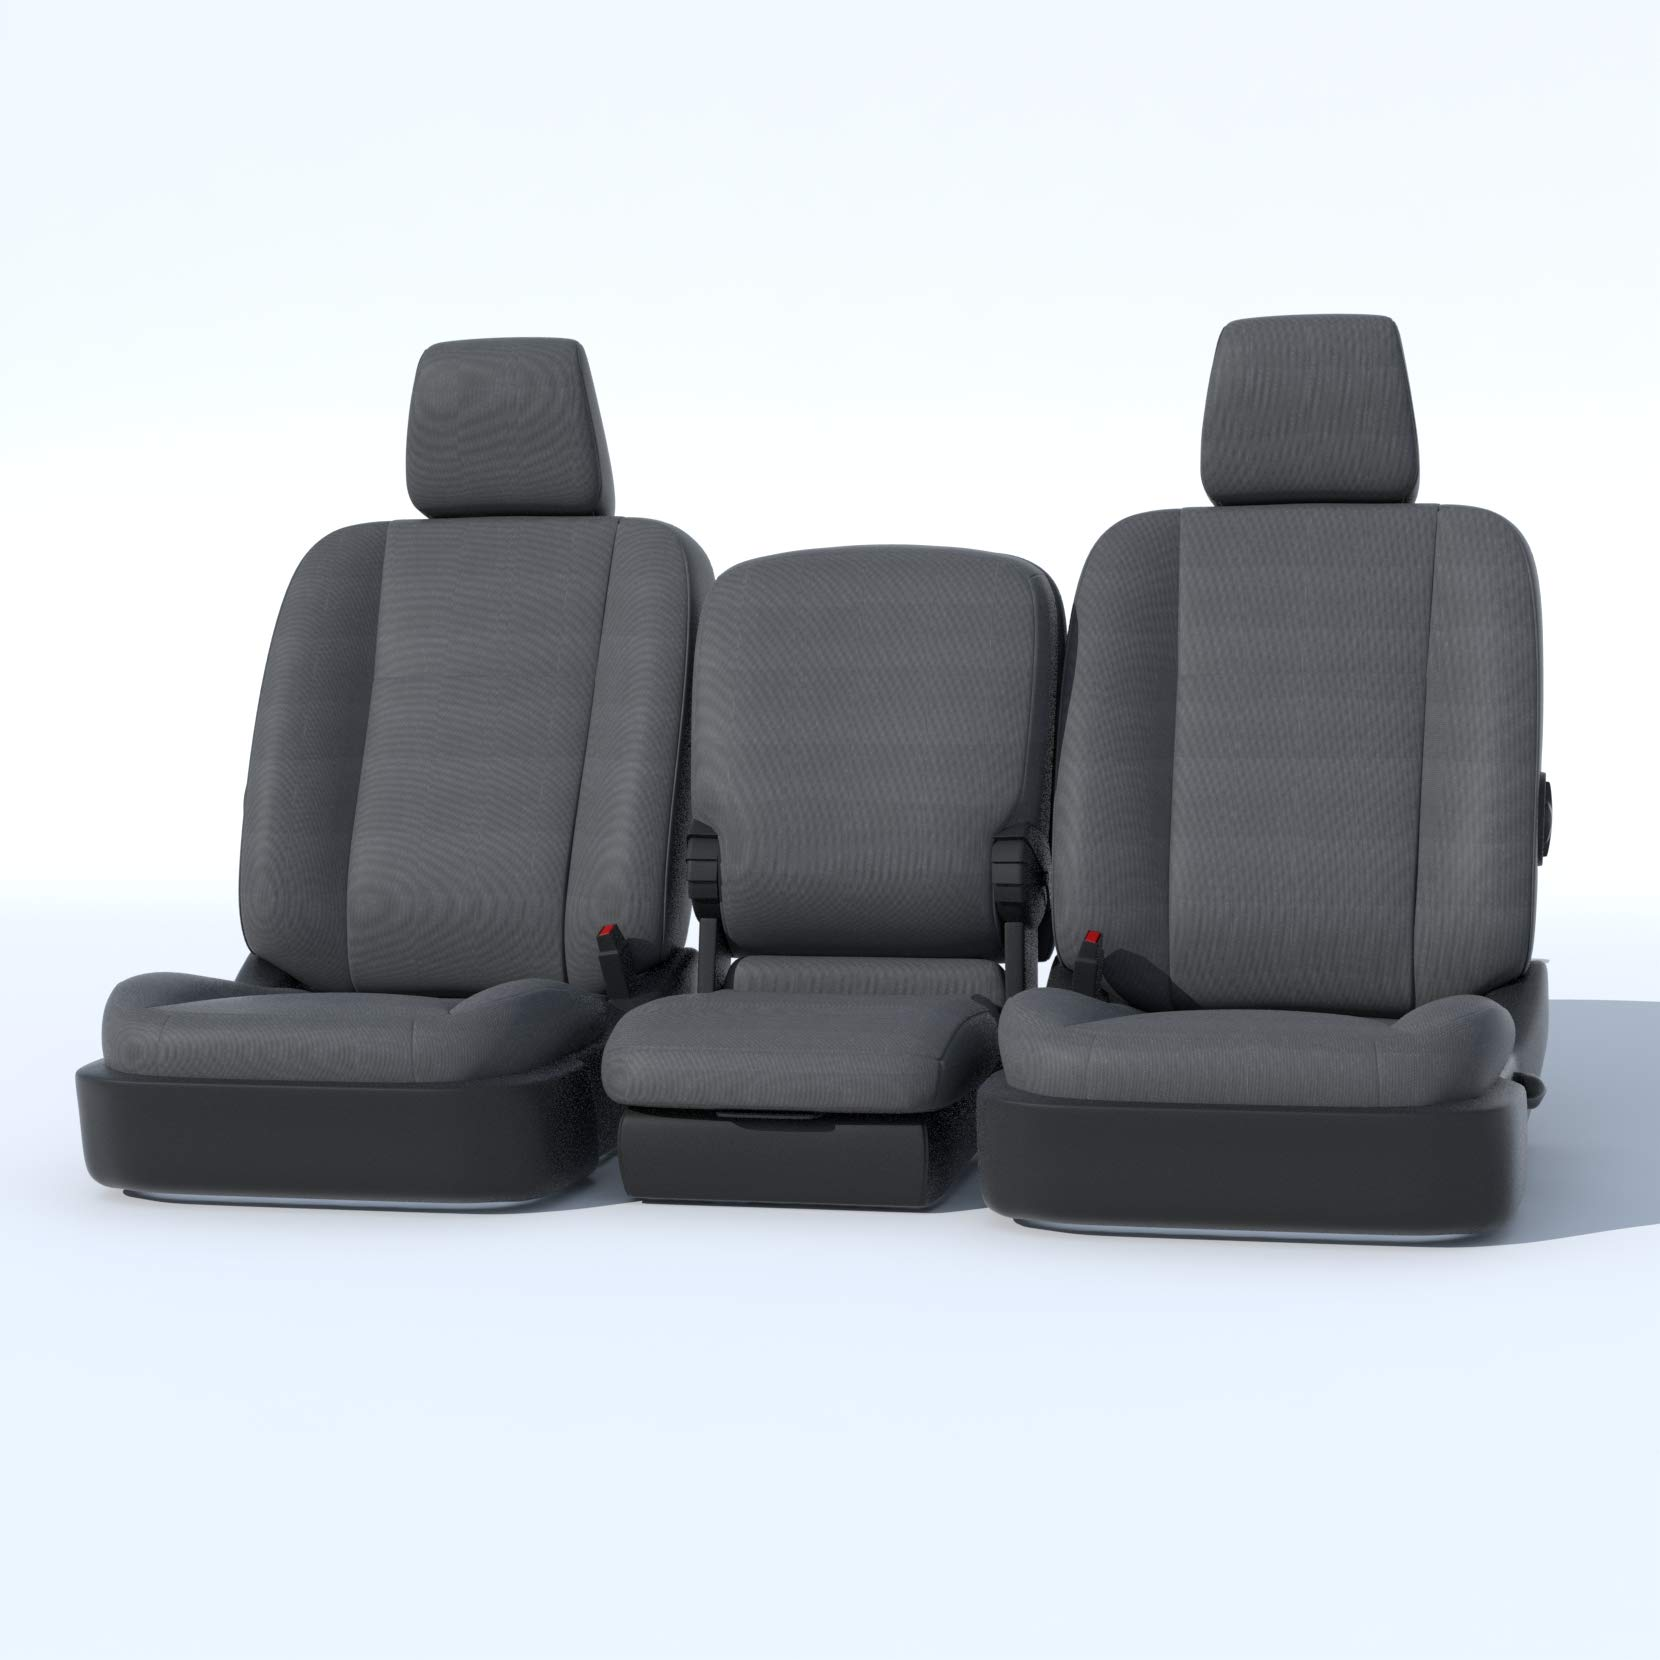 Durafit Seat Covers D1334-C8-FBA, Seat Covers Made in Gray Endura for 2013-2018 Dodge Ram Front 40/20/40 Split Bench with Opening Center Console. 20 Section seat Bottom Does NOT Open.